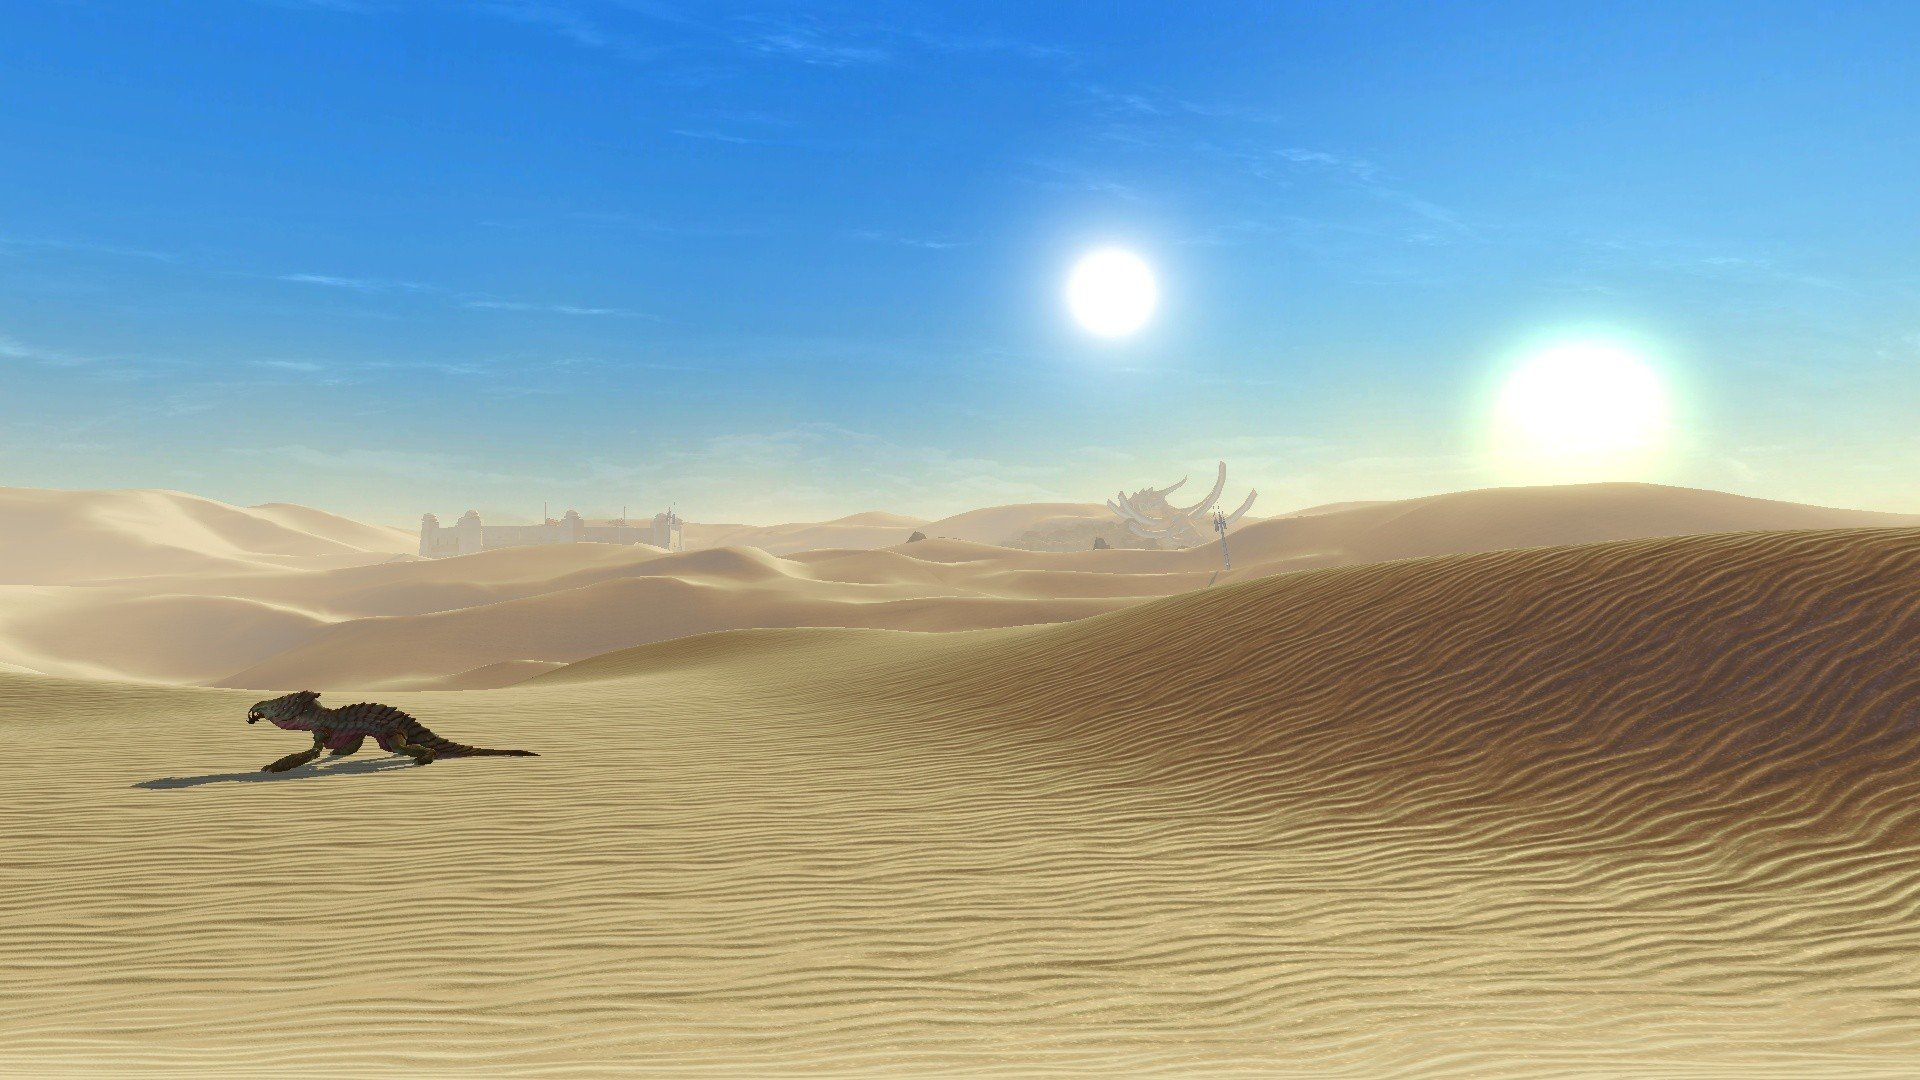 Star Wars: The Old Republic - SWTOR - Tatooine